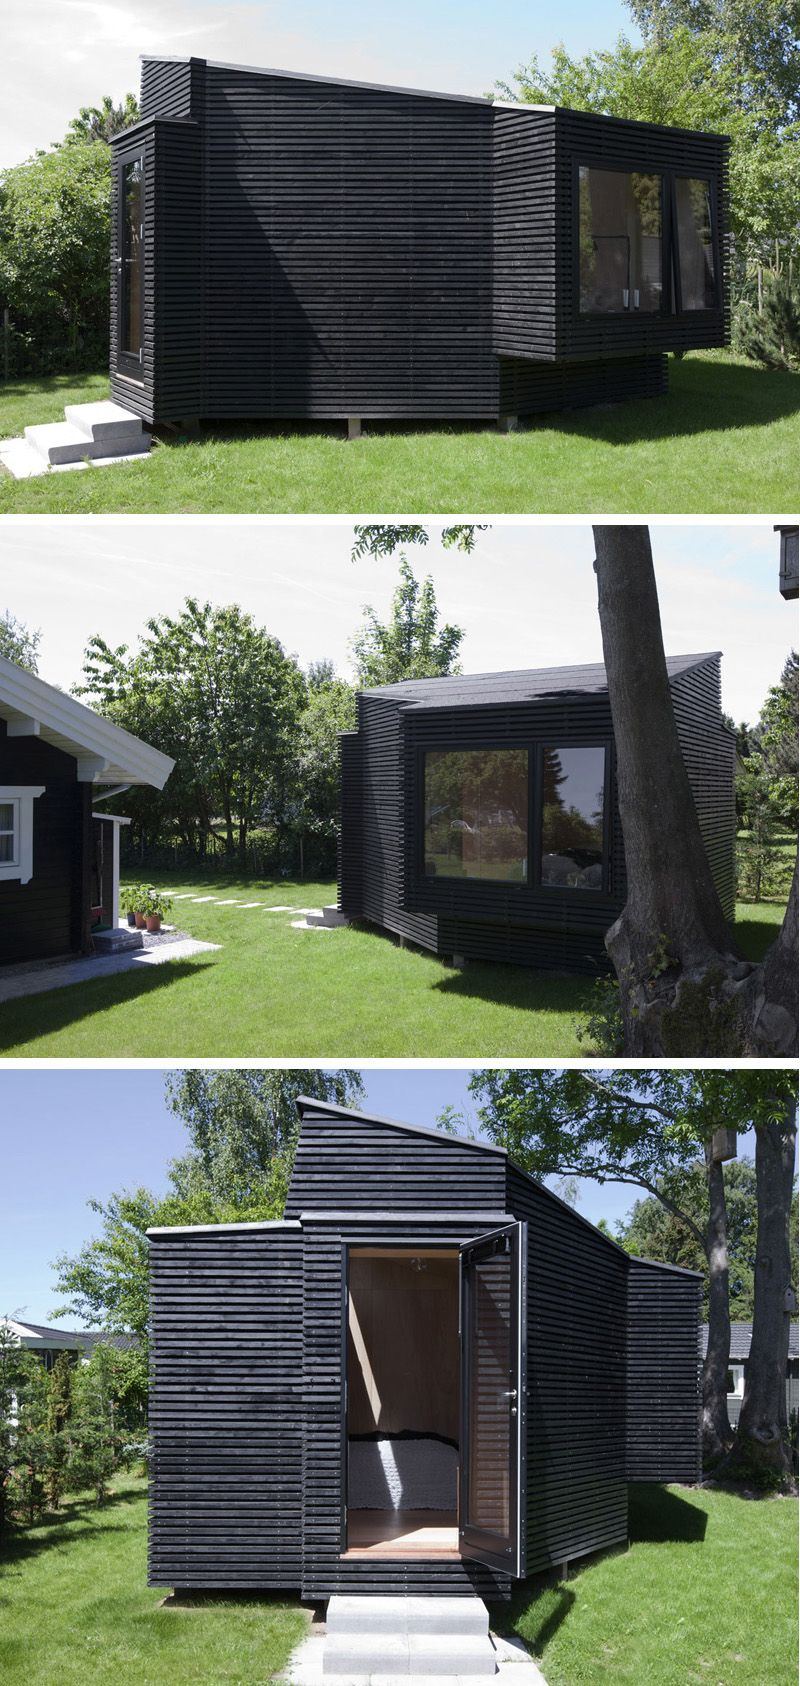 This Backyard Guest House Provides Extra Space For Visitors Backyard Guest Houses Exterior Design Backyard Small Summer House Backyard ideas with guest house